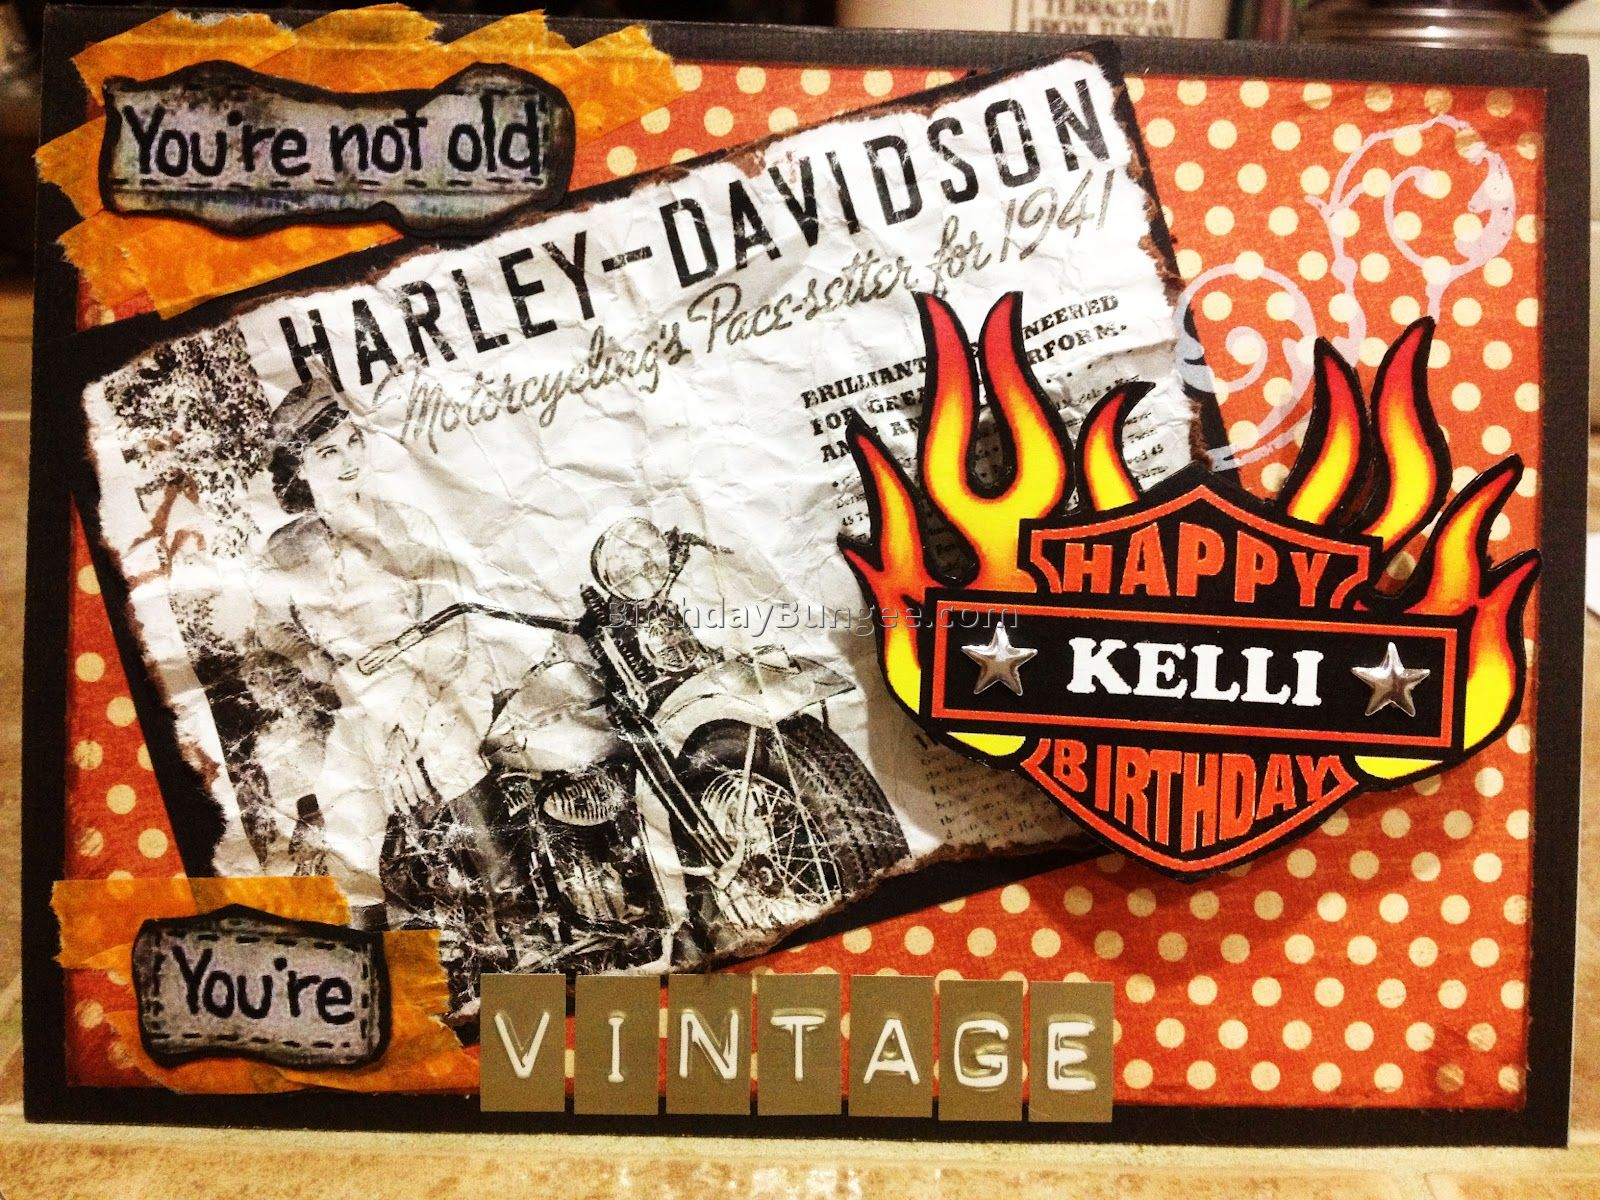 harley davidson birthday cards printable ; Harley-Davidson-Birthday-Card-Best-Harley-Davidson-Birthday-Cards